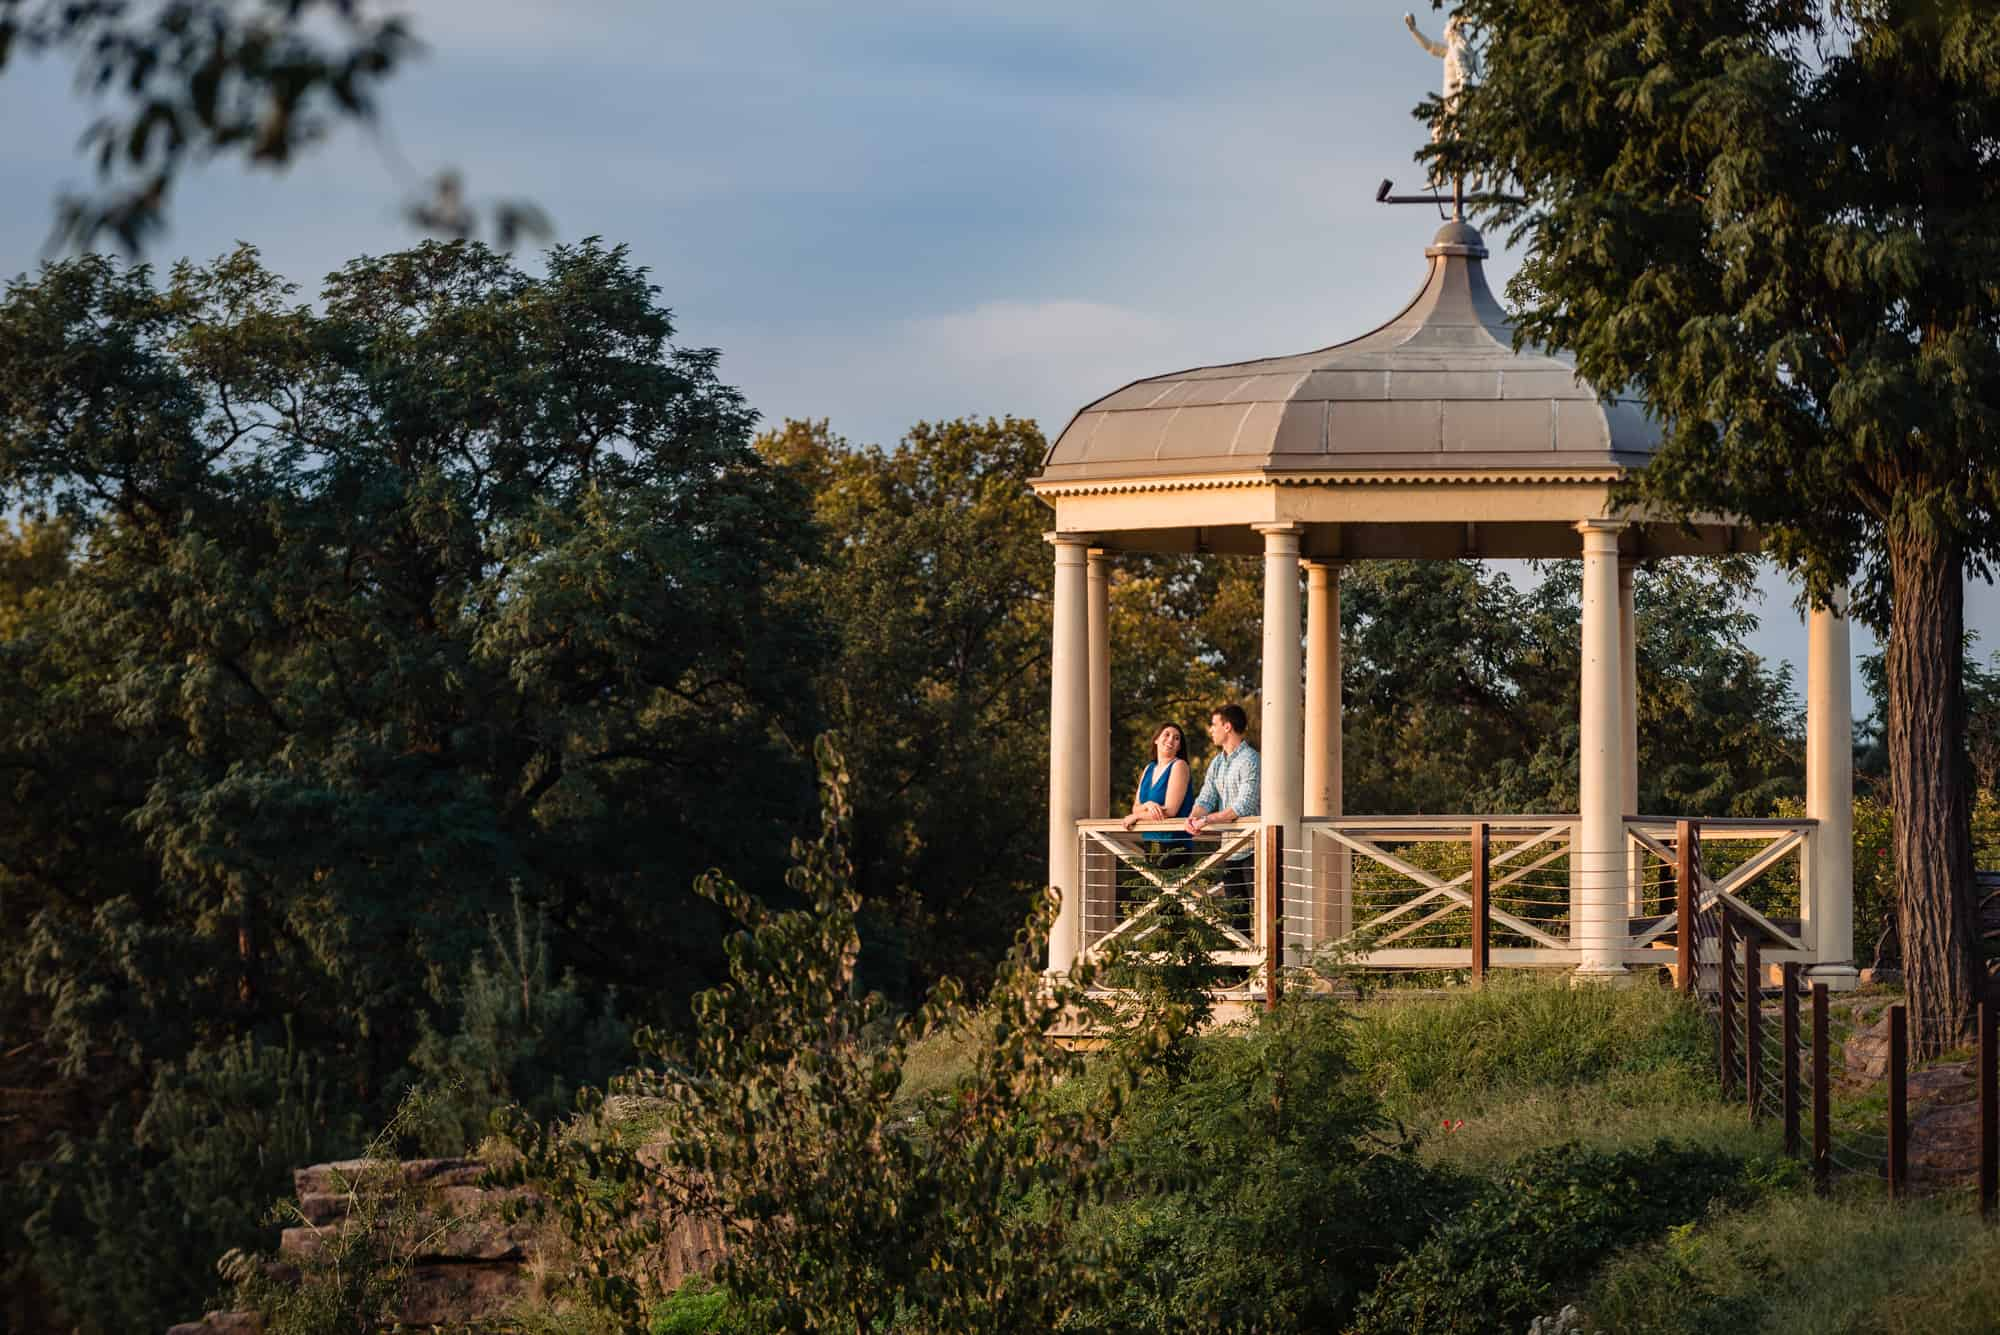 A couple watching the sunset in the gazebo at the Philadelphia Museum of Art